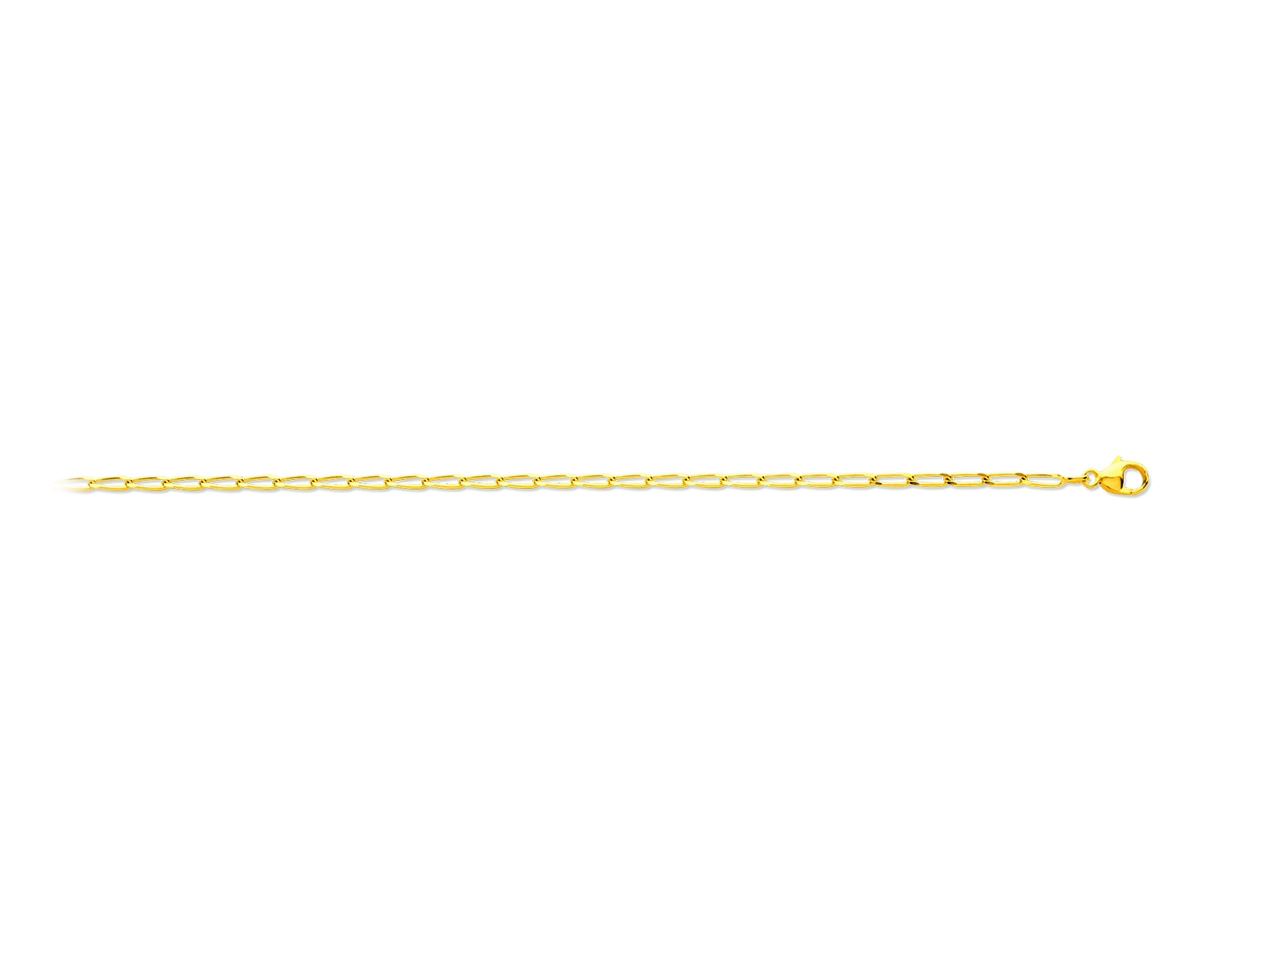 Collier maille cheval 2 mm, 55 cm, Or jaune 18k